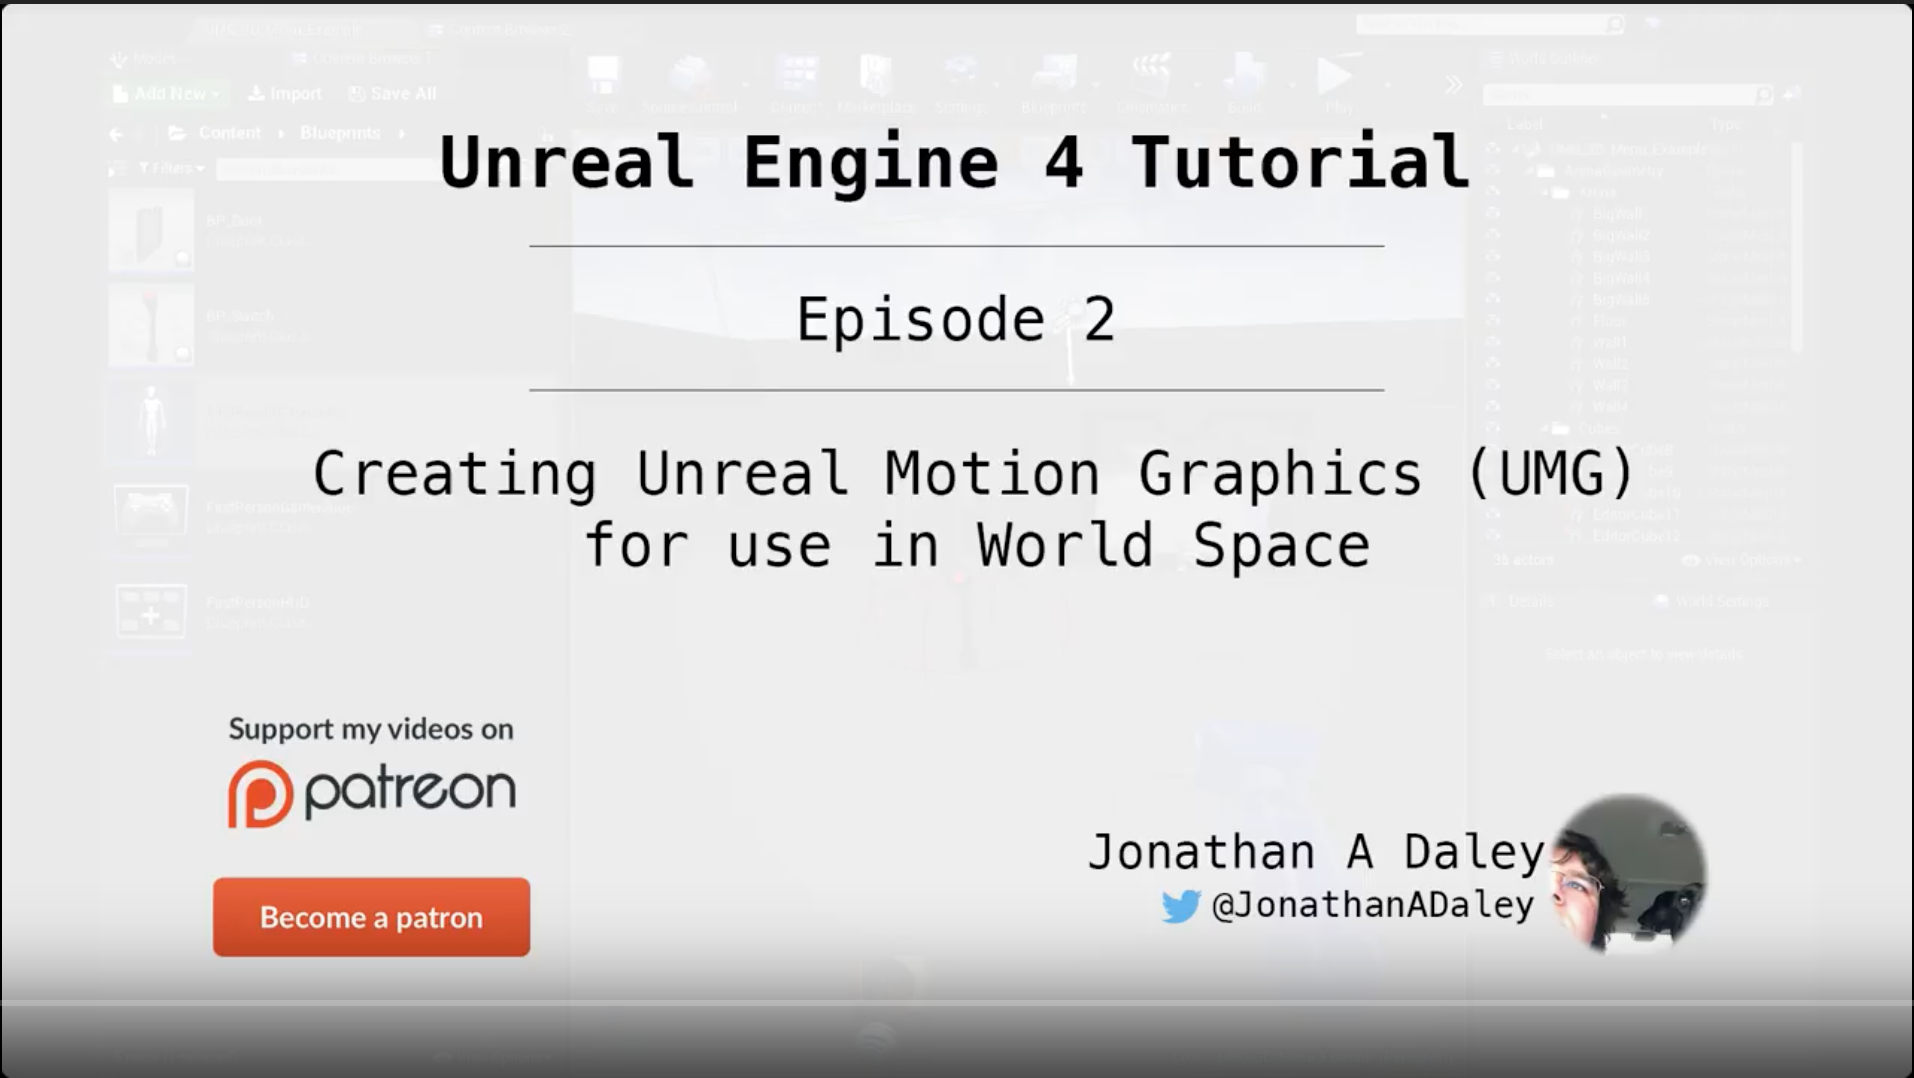 Unreal Engine 4 Tutorial - Ep2 - Creating Unreal Motion Graphics (UMG) for use in World Space